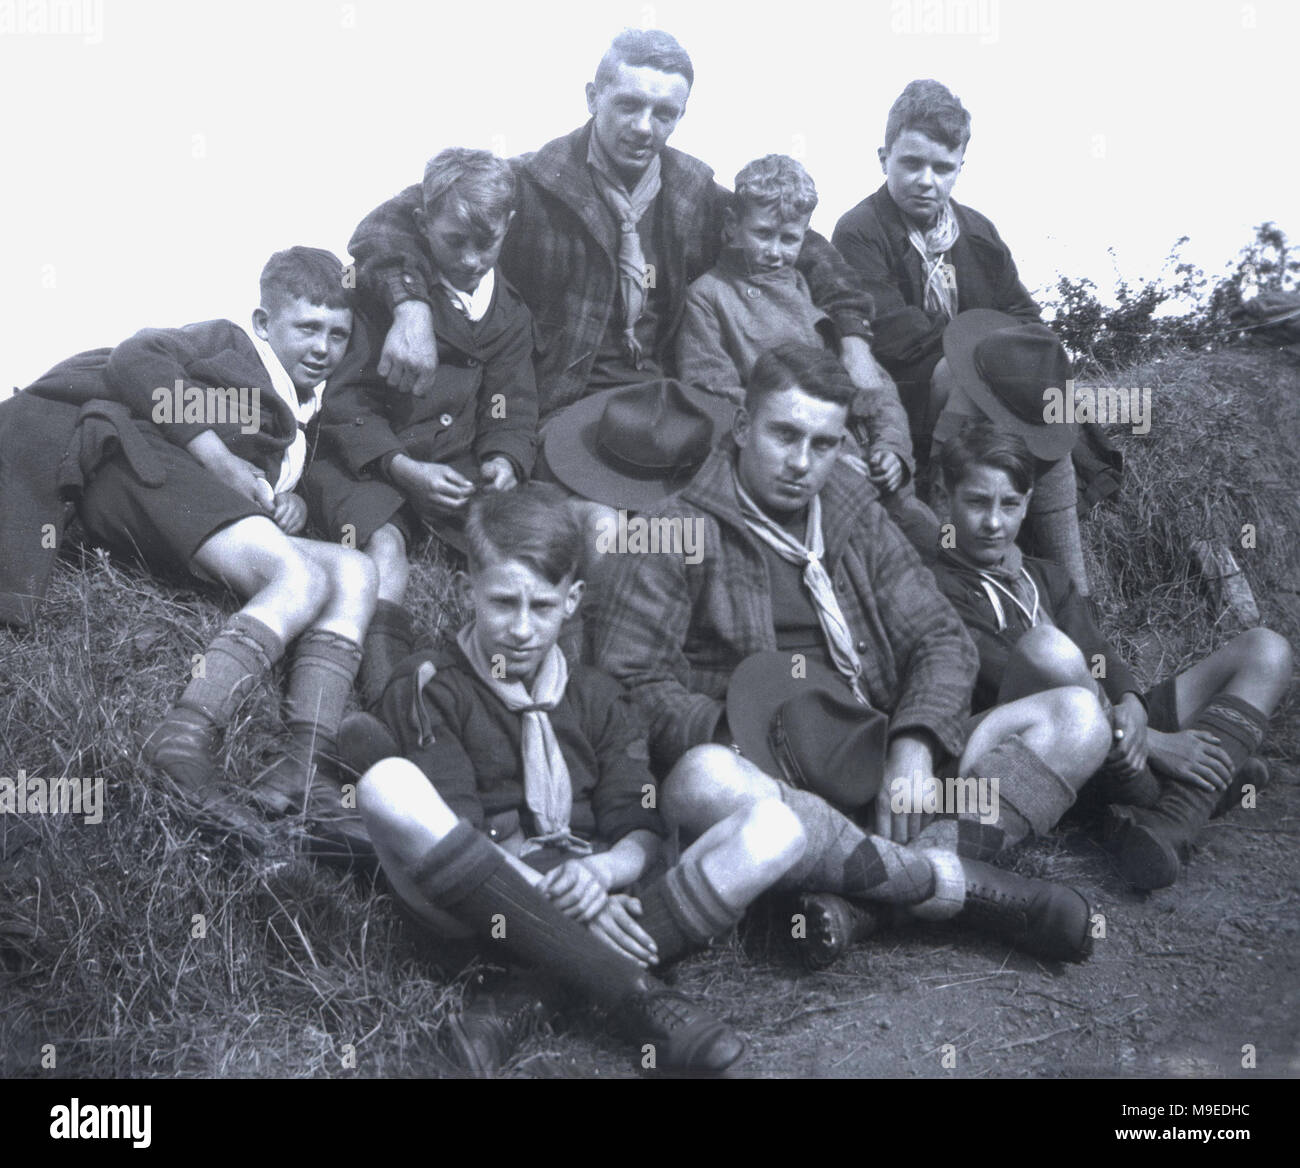 1934, historical picture of two Scoutmasters wearing check jackets over their uniform, sitting together with a group of young boy scouts, also in their scouting outfirs, outside in the countryside. - Stock Image